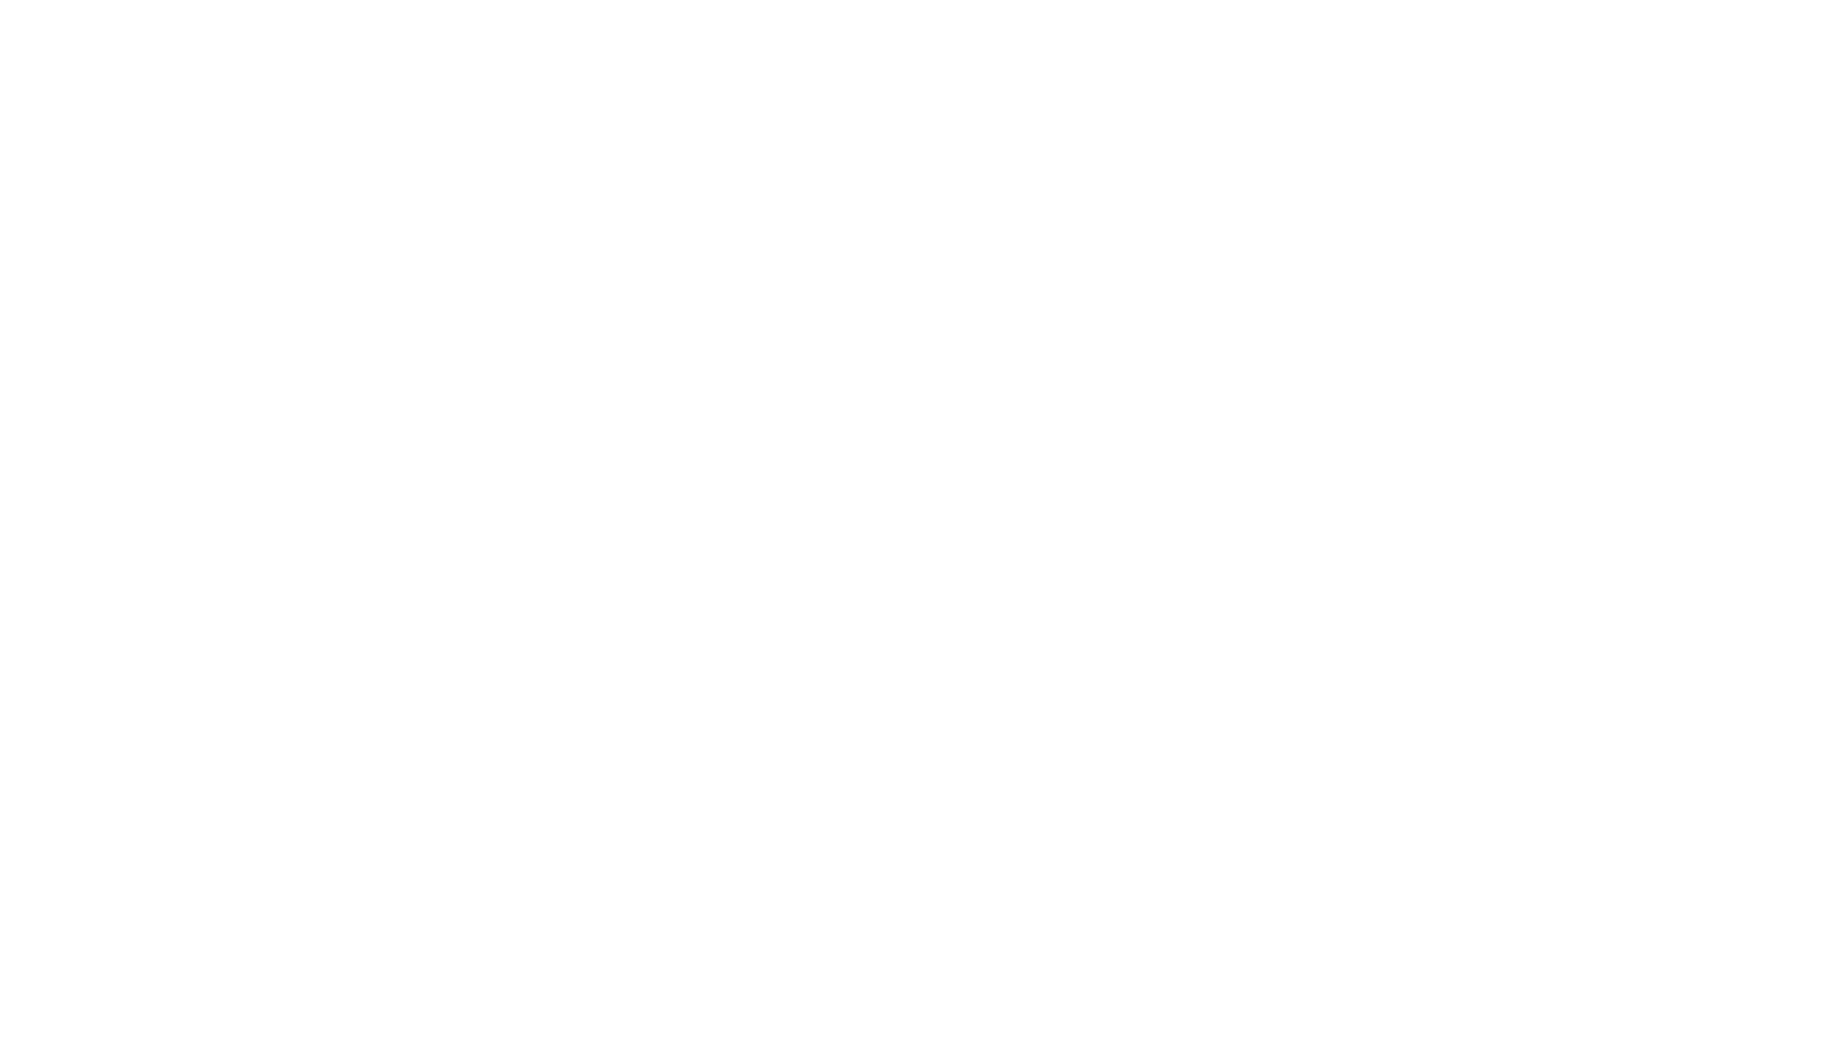 Anna Tran Ottawa Real Estate